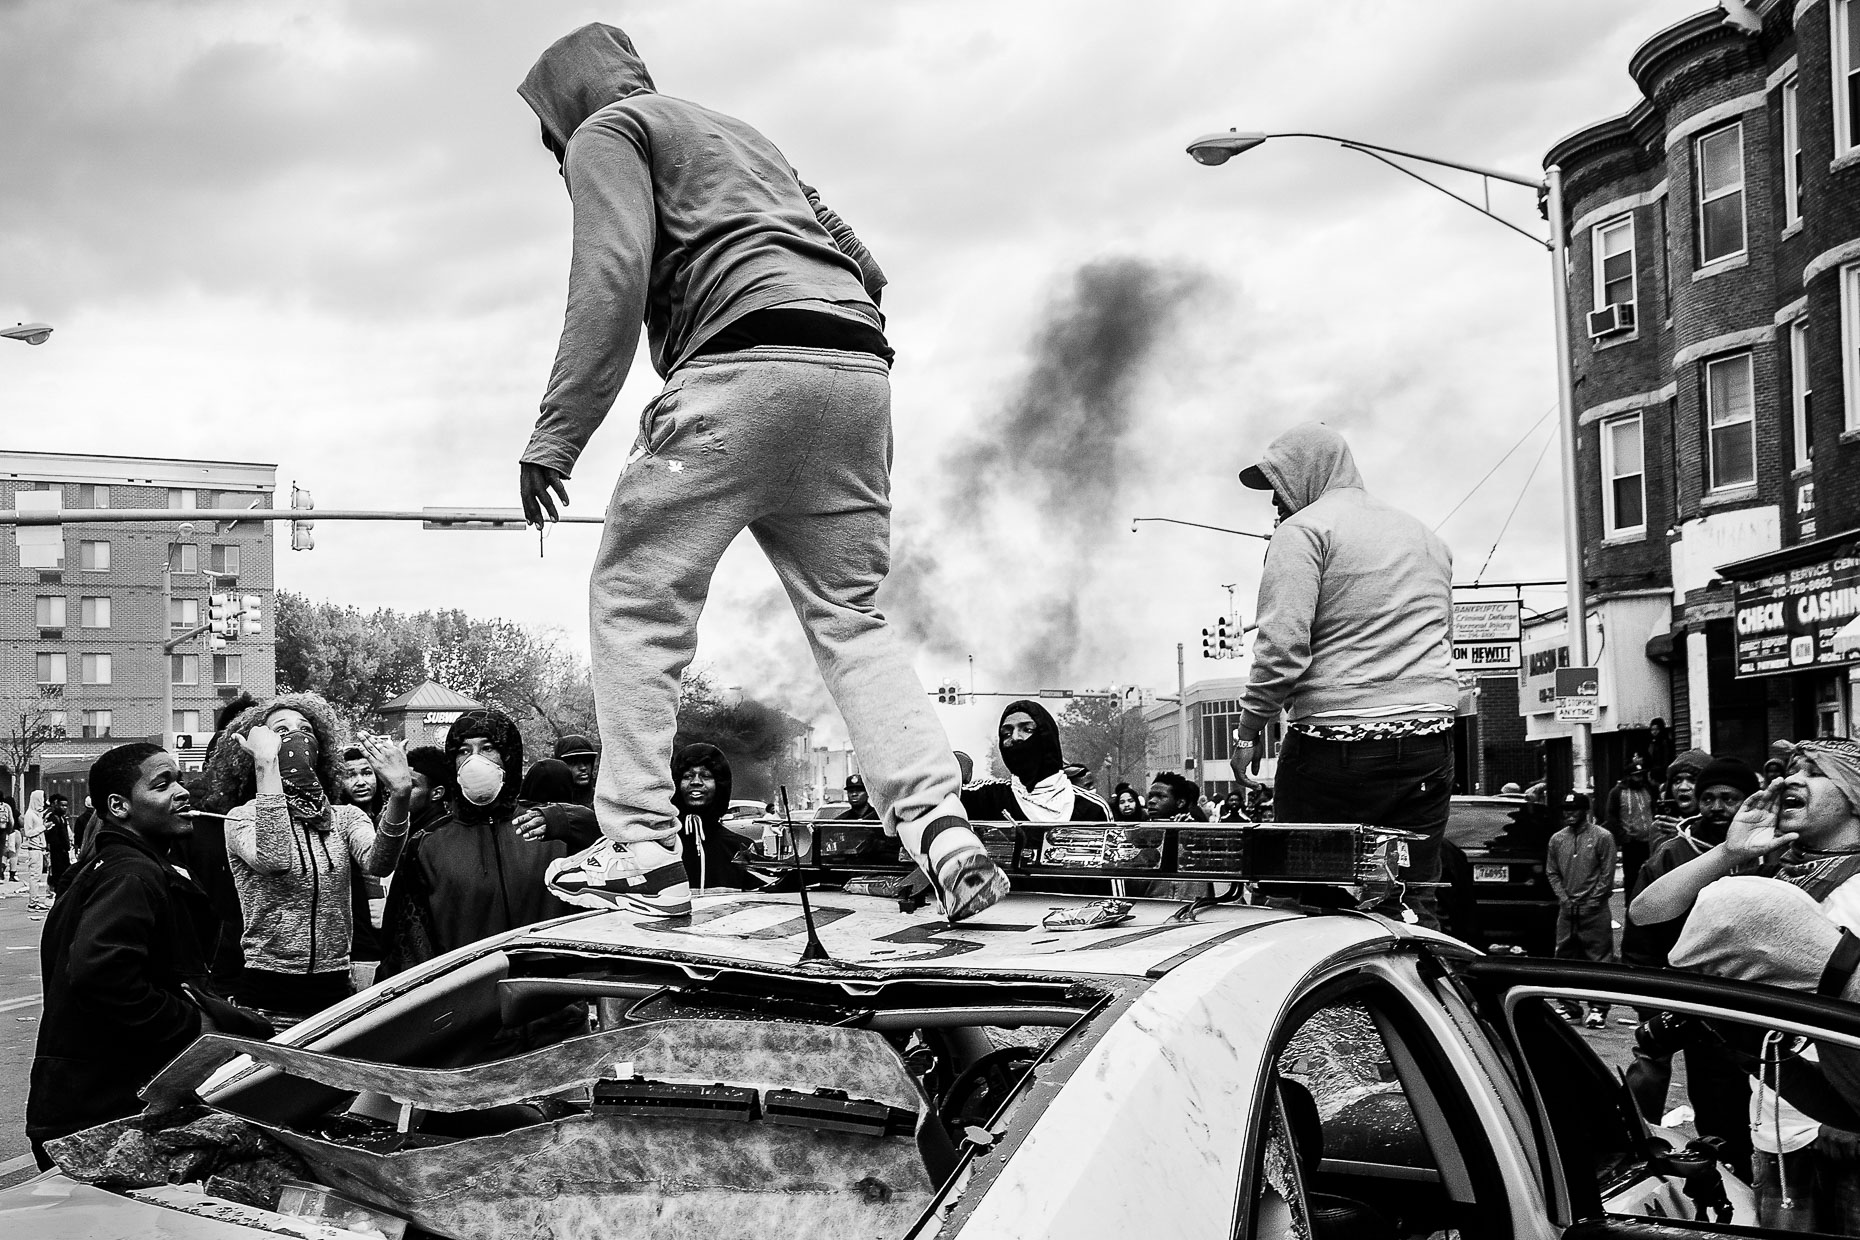 Baltimore Responds - The Baltimore Uprising - Photojournalism 28